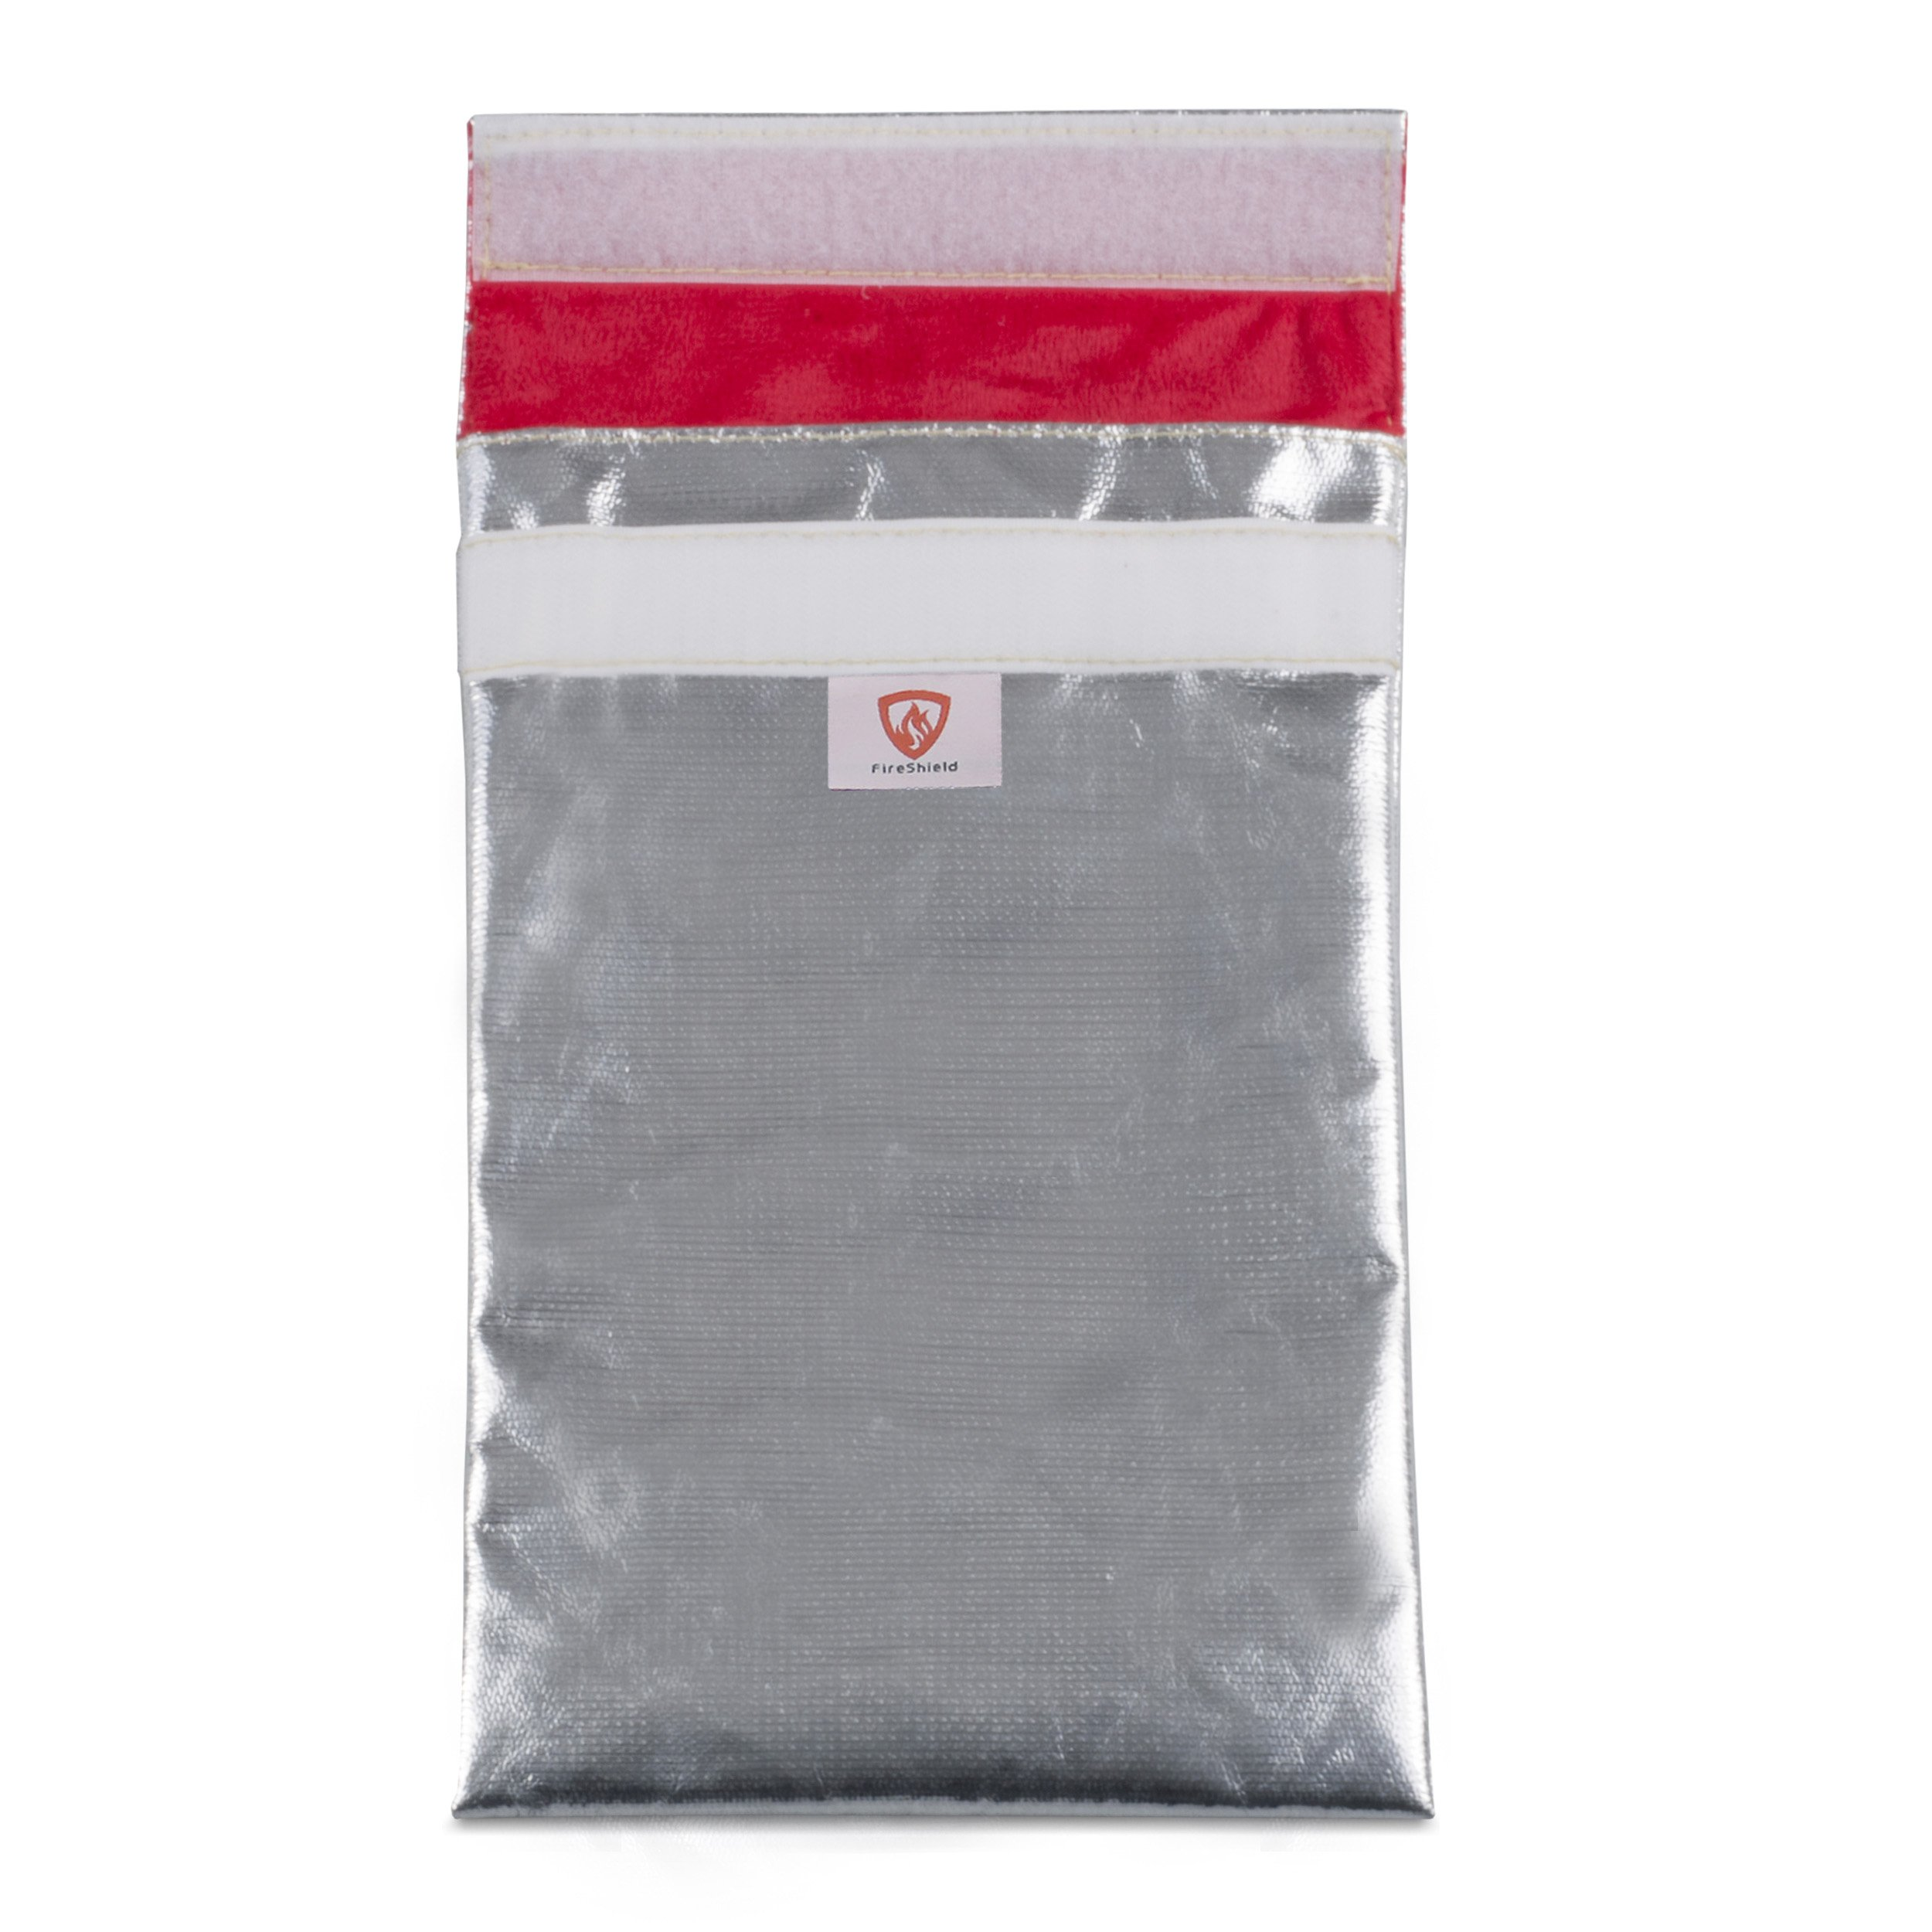 """11""""x7"""" 3-Layer Small Fireproof Bag – No Exposed Fiberglass! - Fire Resistant Storage For Cash, Passports, Photos, and Valuables"""